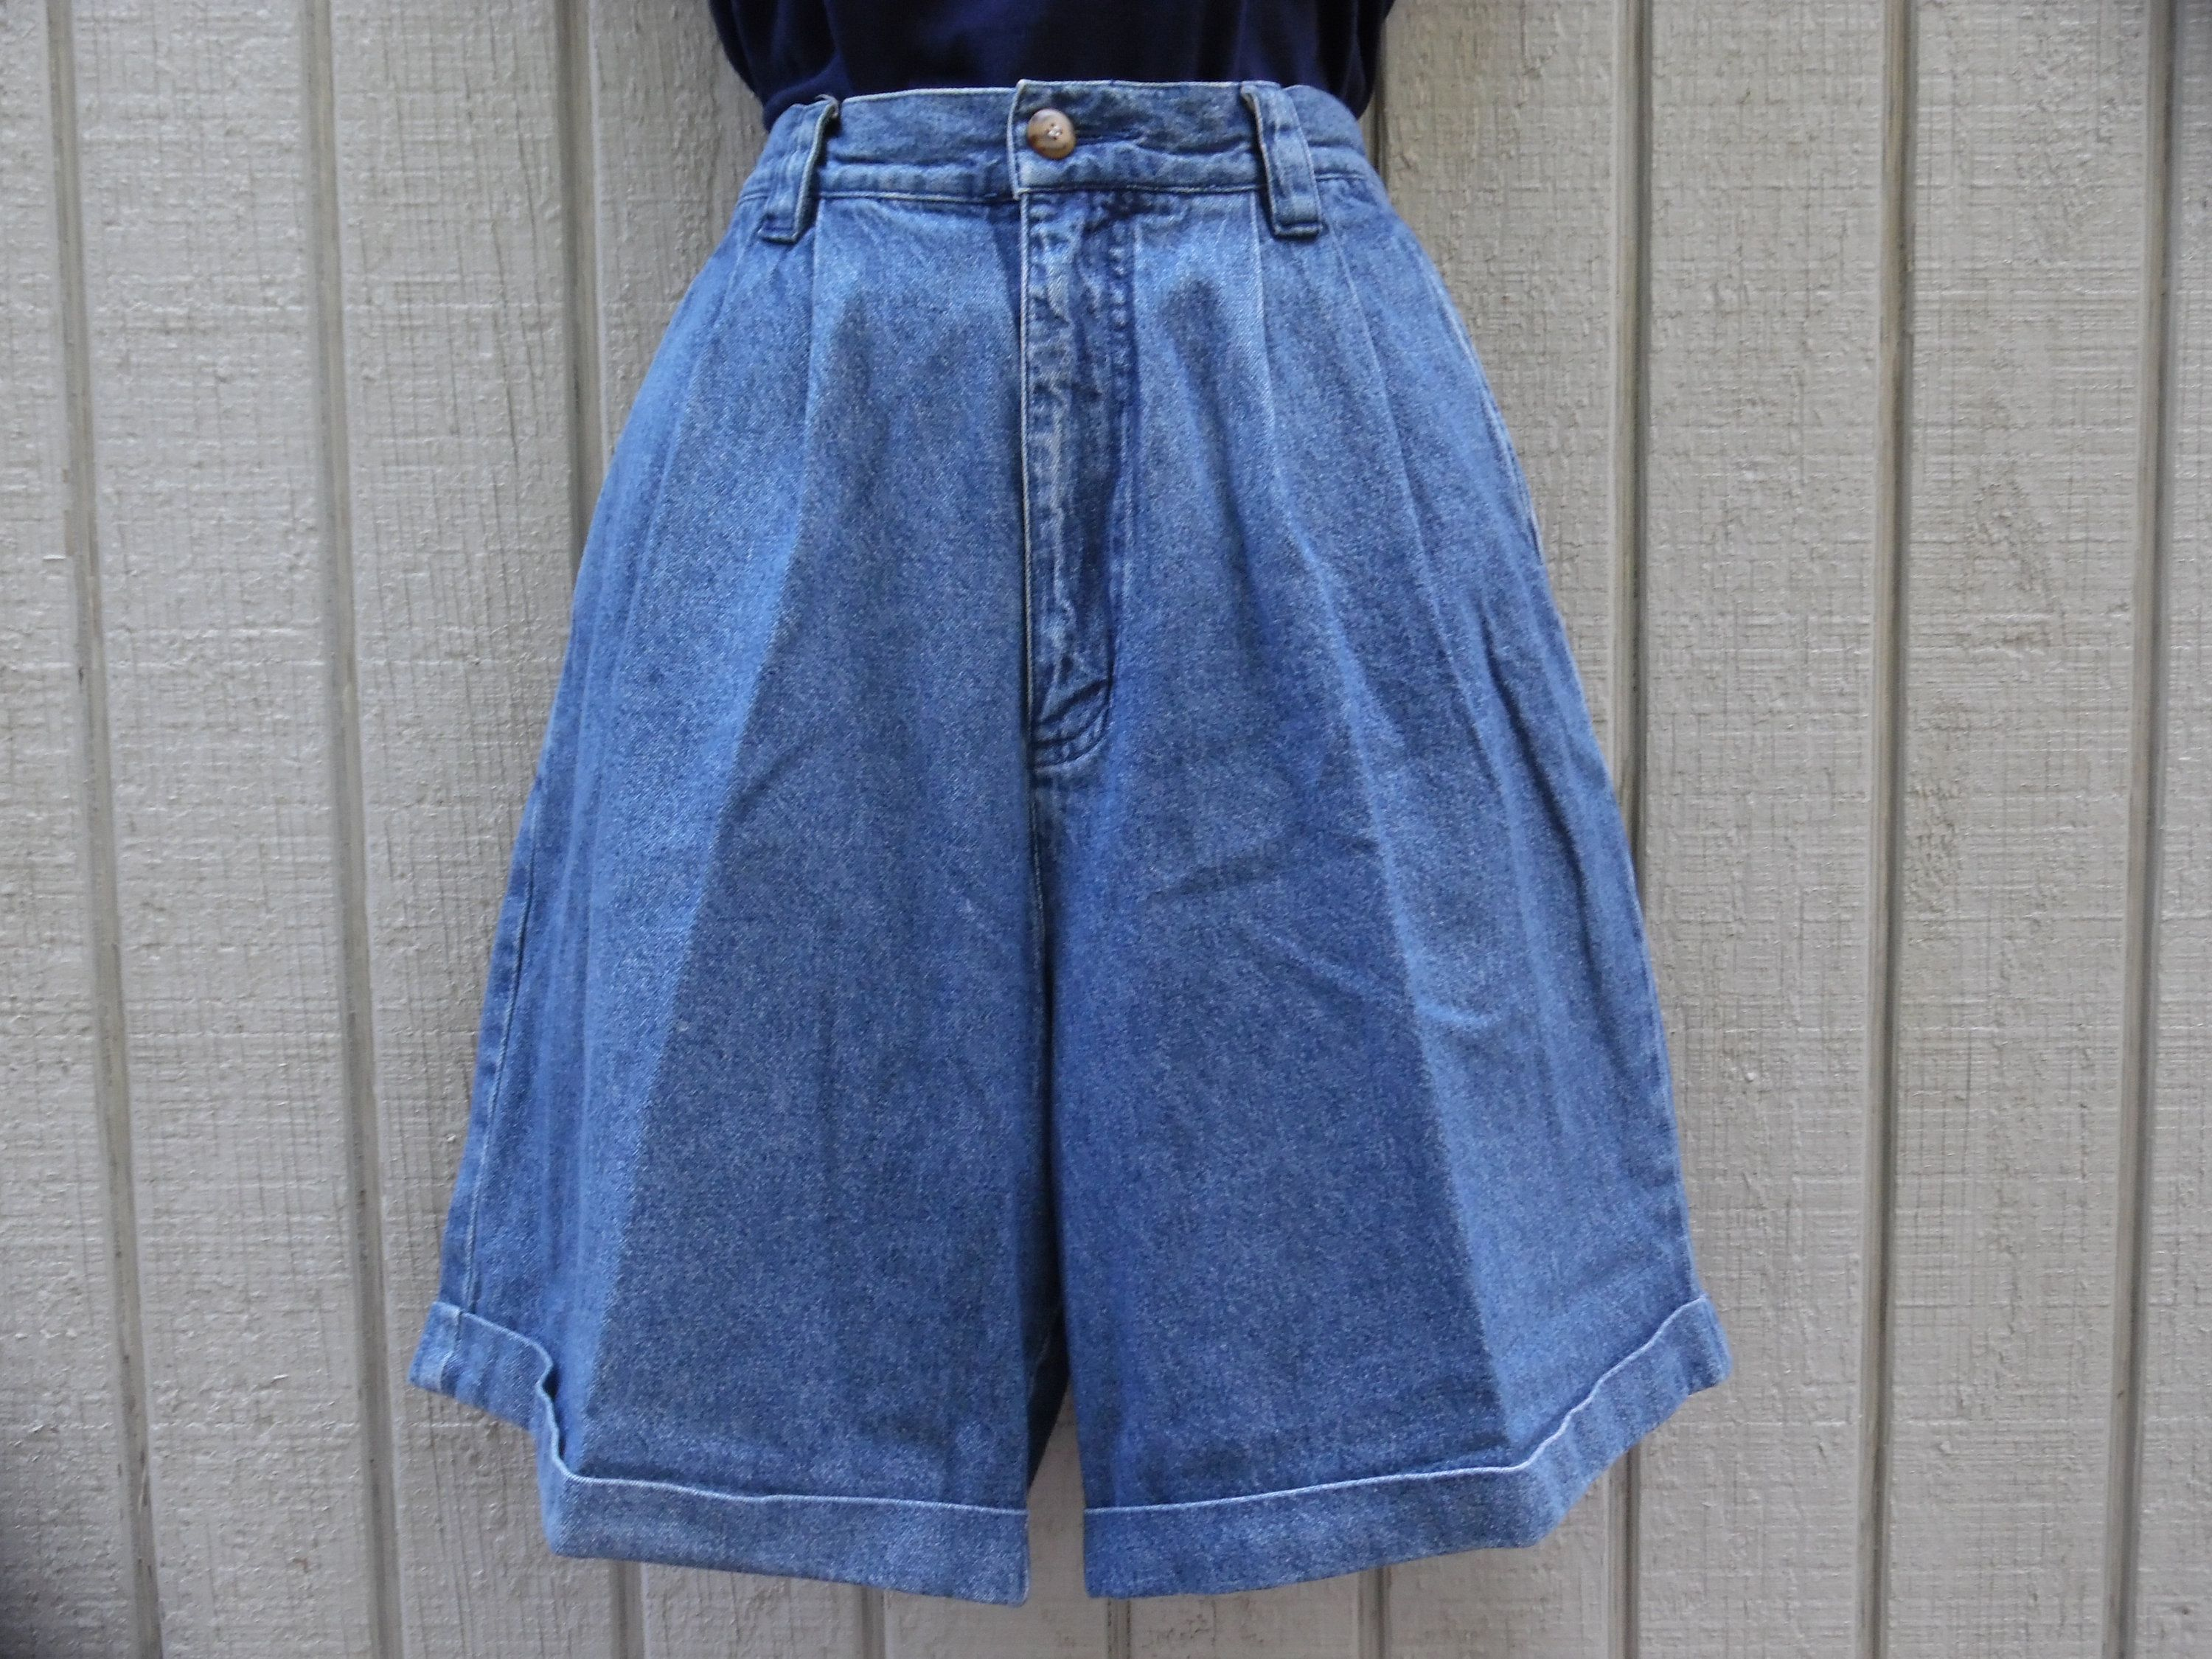 1ce3548ead 90s Vintage High Waist Mom Jean Shorts 1990s Denim Grunge Pleated Shorts  Size Medium by Eddie Bauer